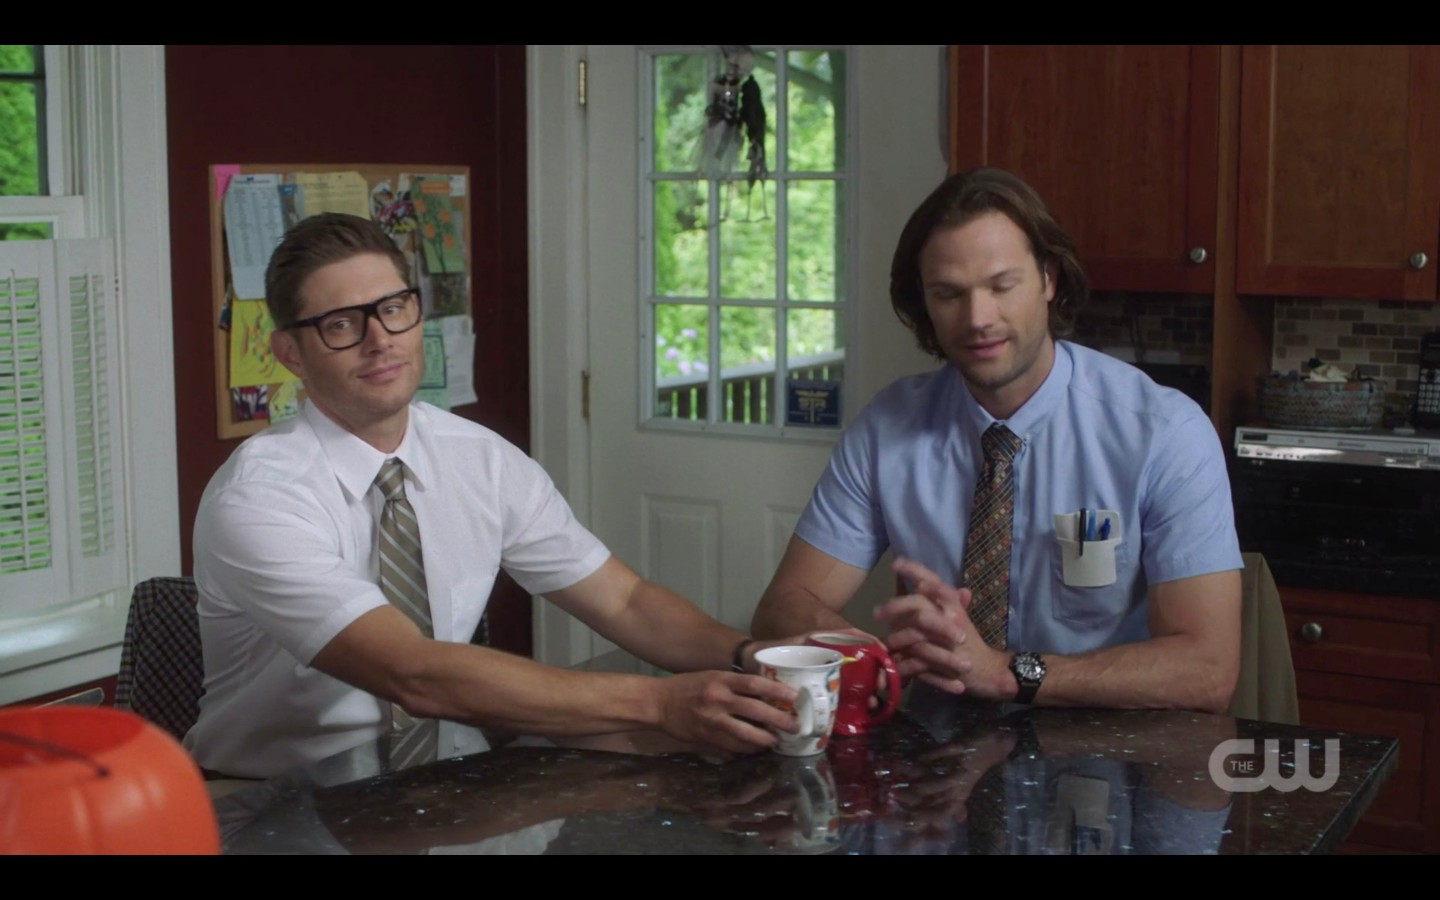 sam dean winchester in insurance geek outfit 1404